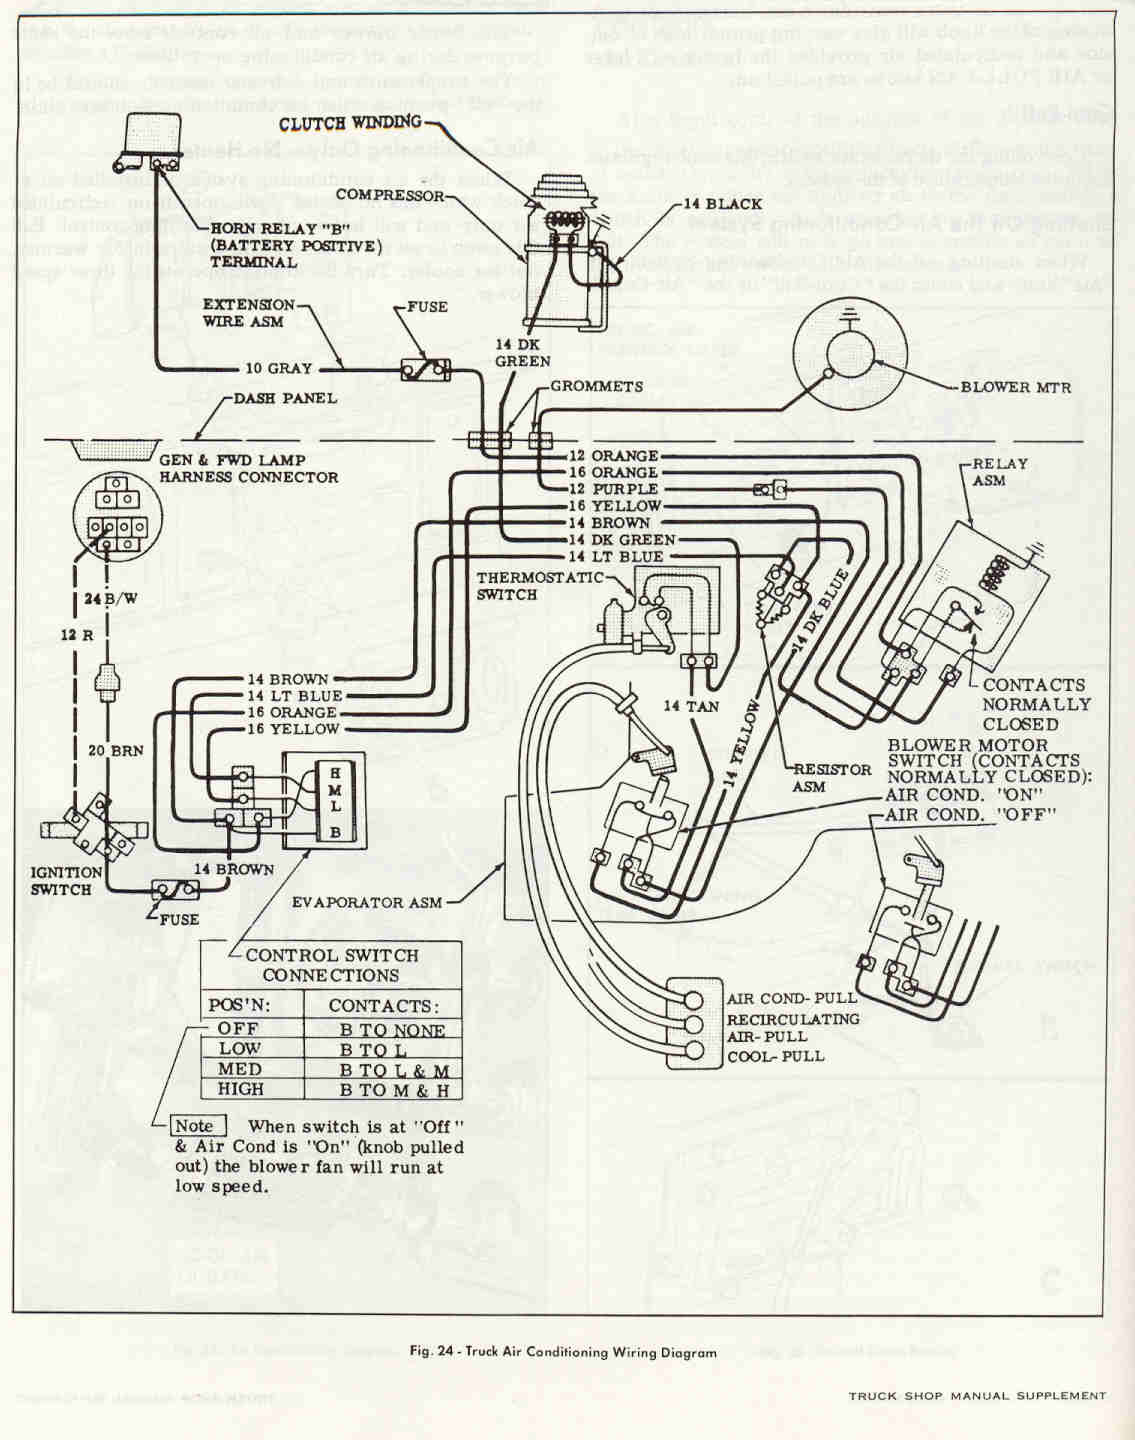 1969 Chevrolet Impala Ac Wiring Diagram | Wiring Diagram ...